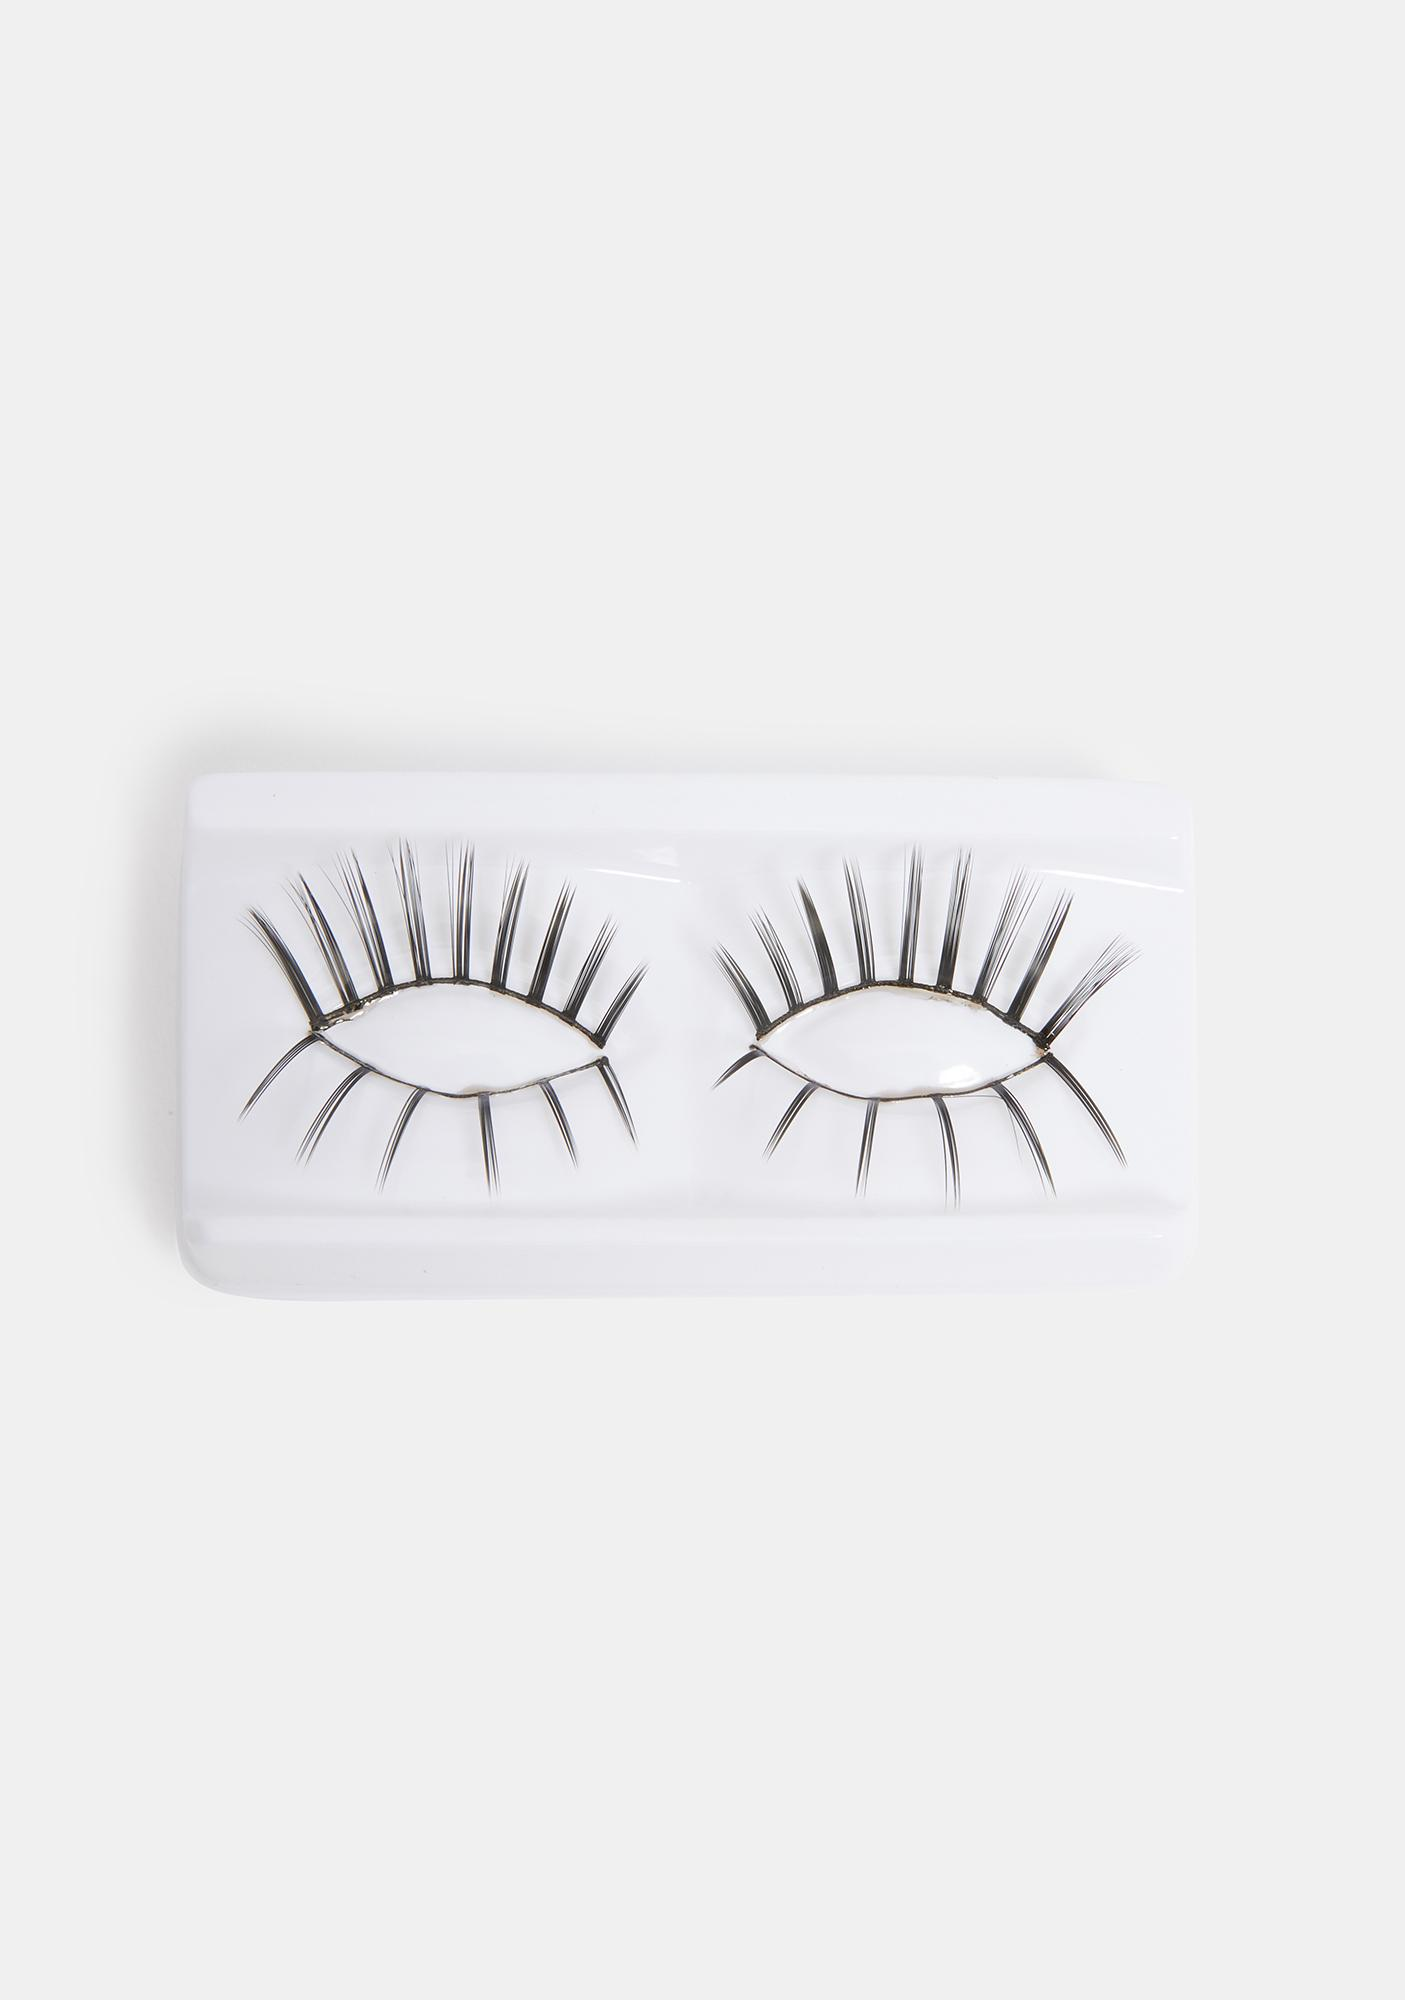 Flirty Fever Eyelashes Set